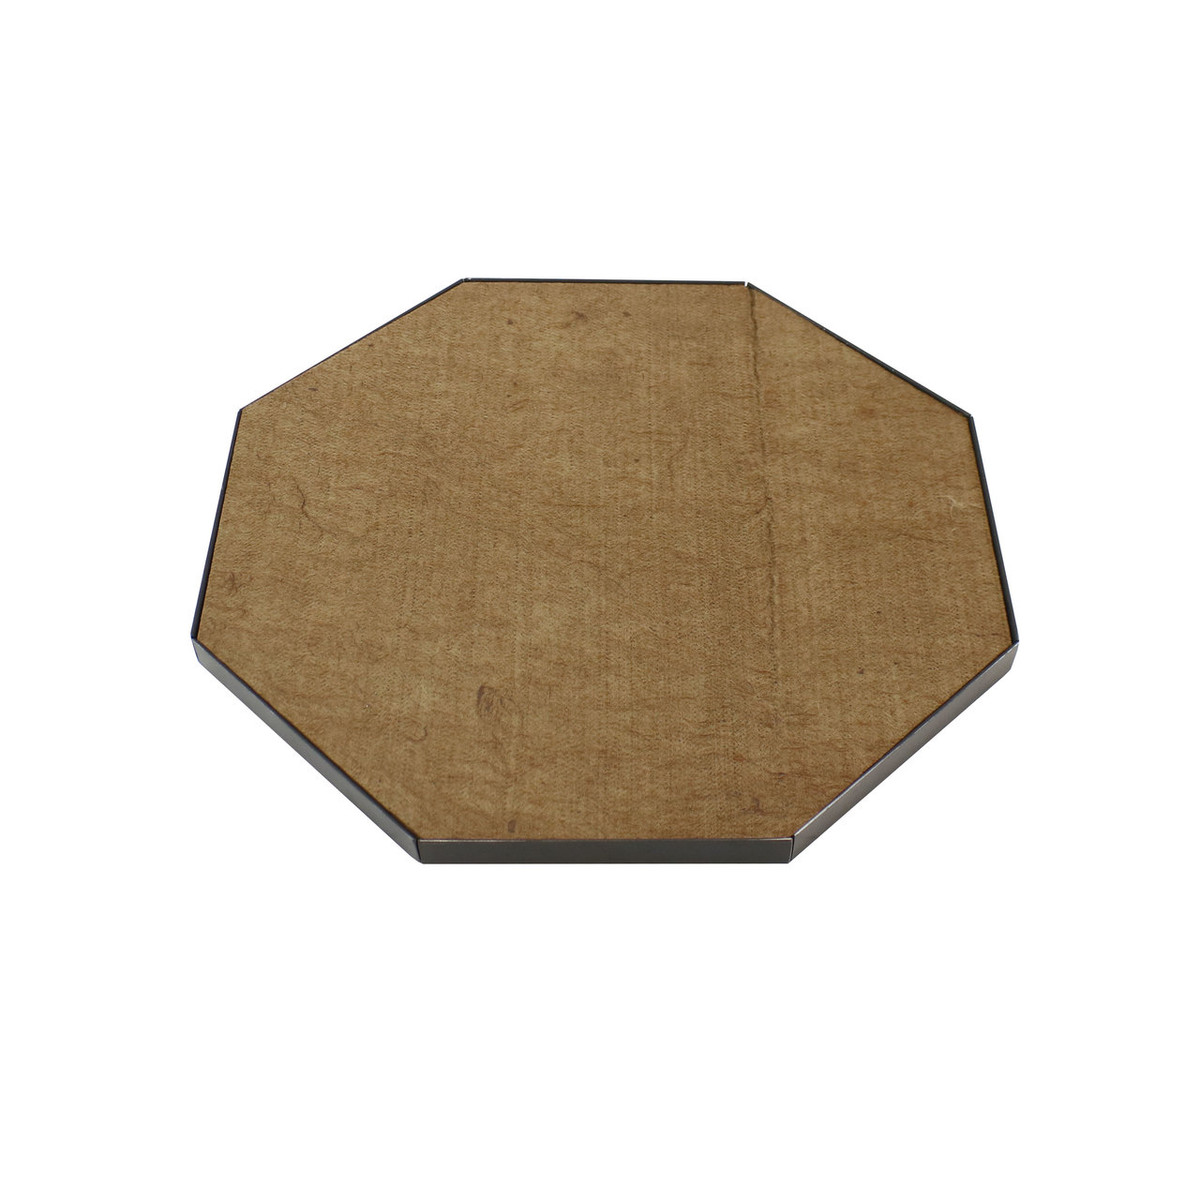 DeckProtect Octagon Fire Pit Pad with Black Rack - DeckProtect Octagon Fire Pit Pad – Deck Fire Pit Mat - Heat Resistant